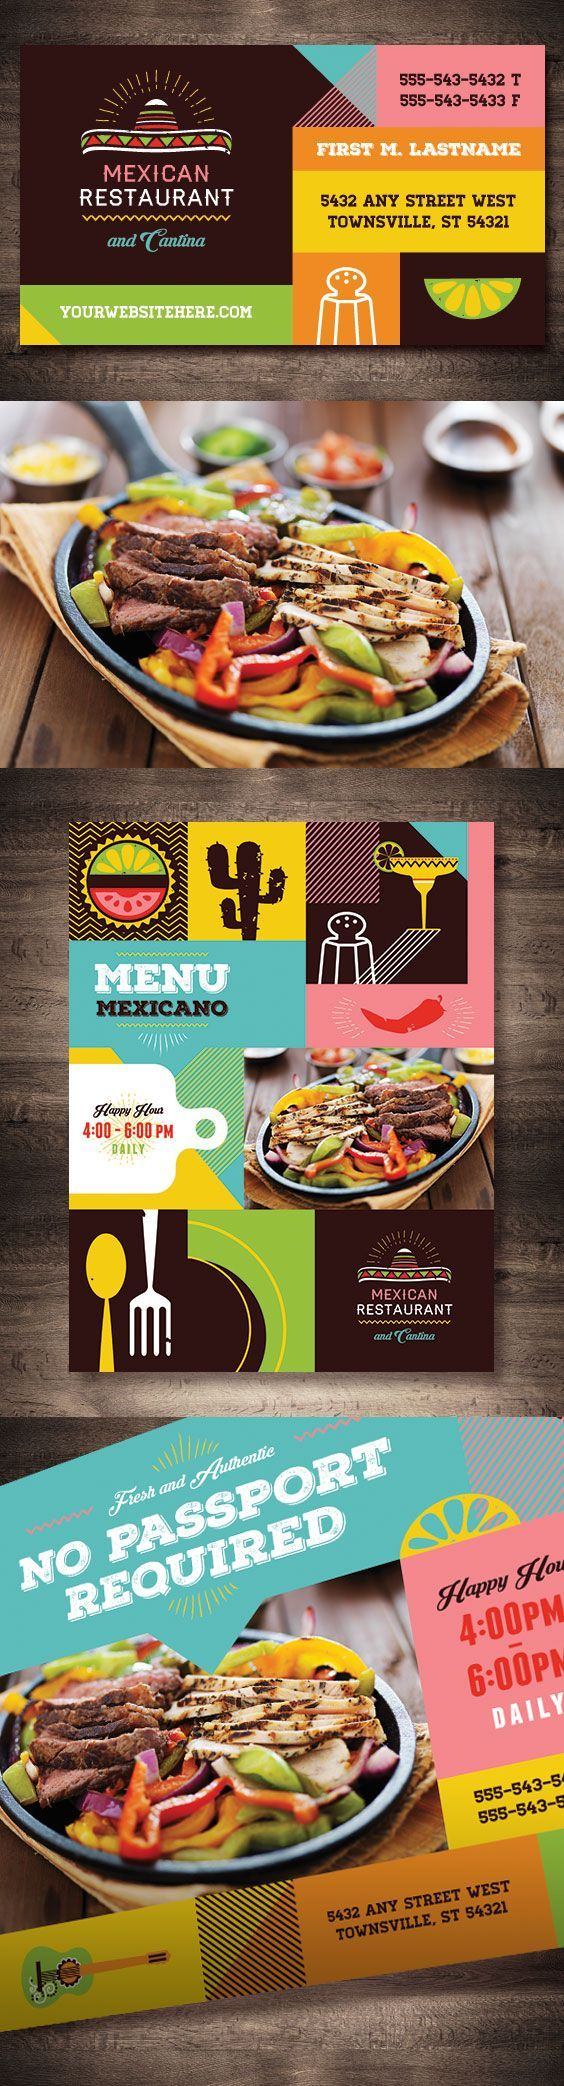 Mexican Restaurant Template Design By Stocklayouts Pinteres